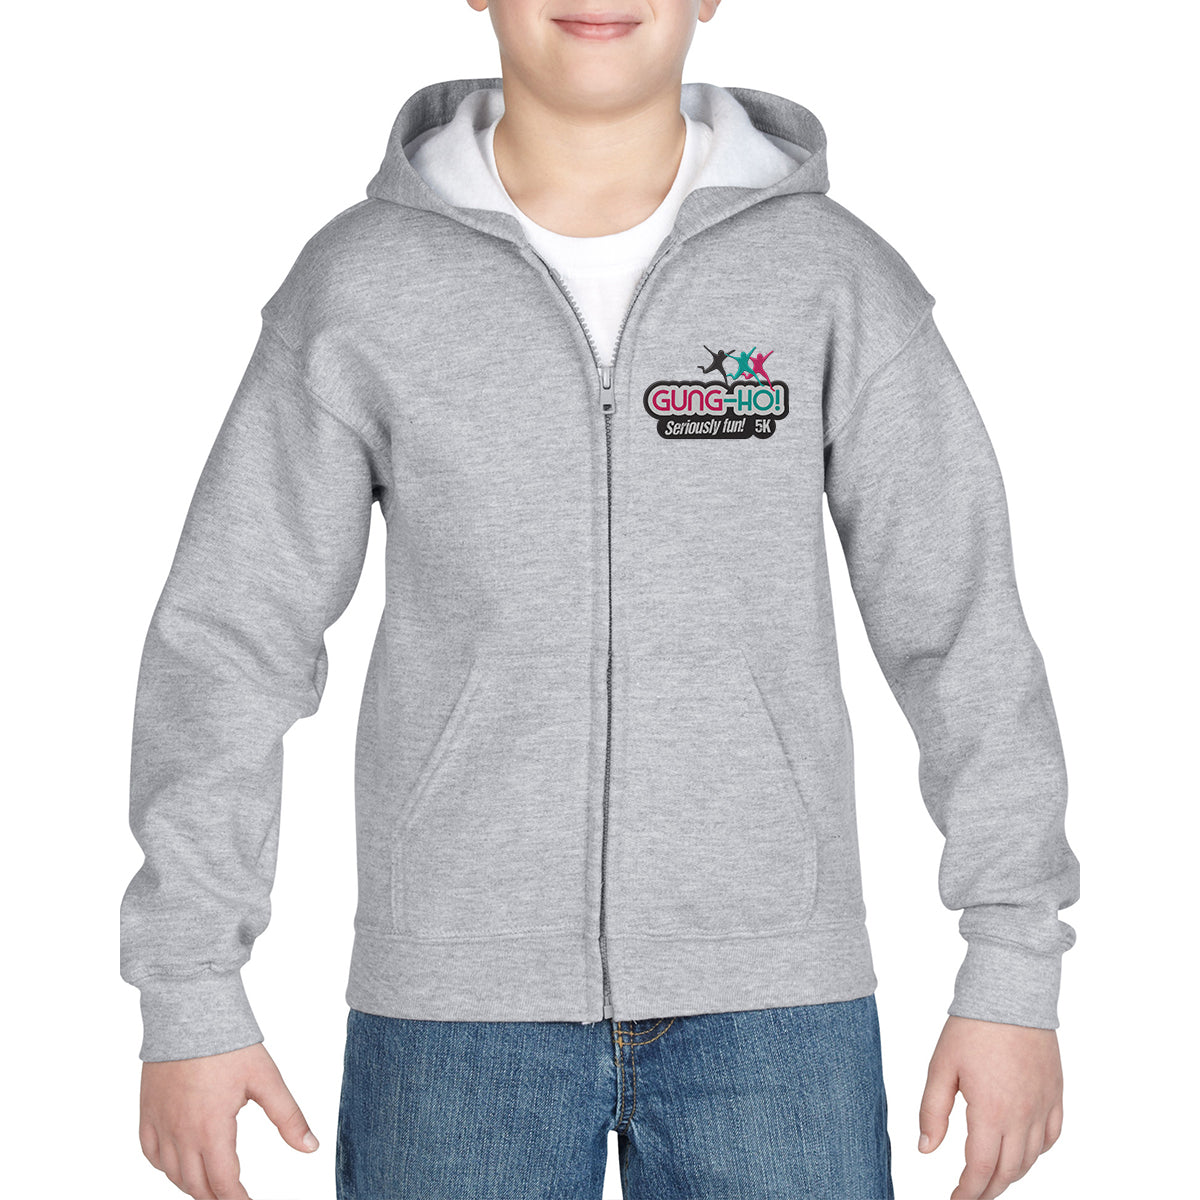 Gung-Ho! Kids Full Zip Hoody